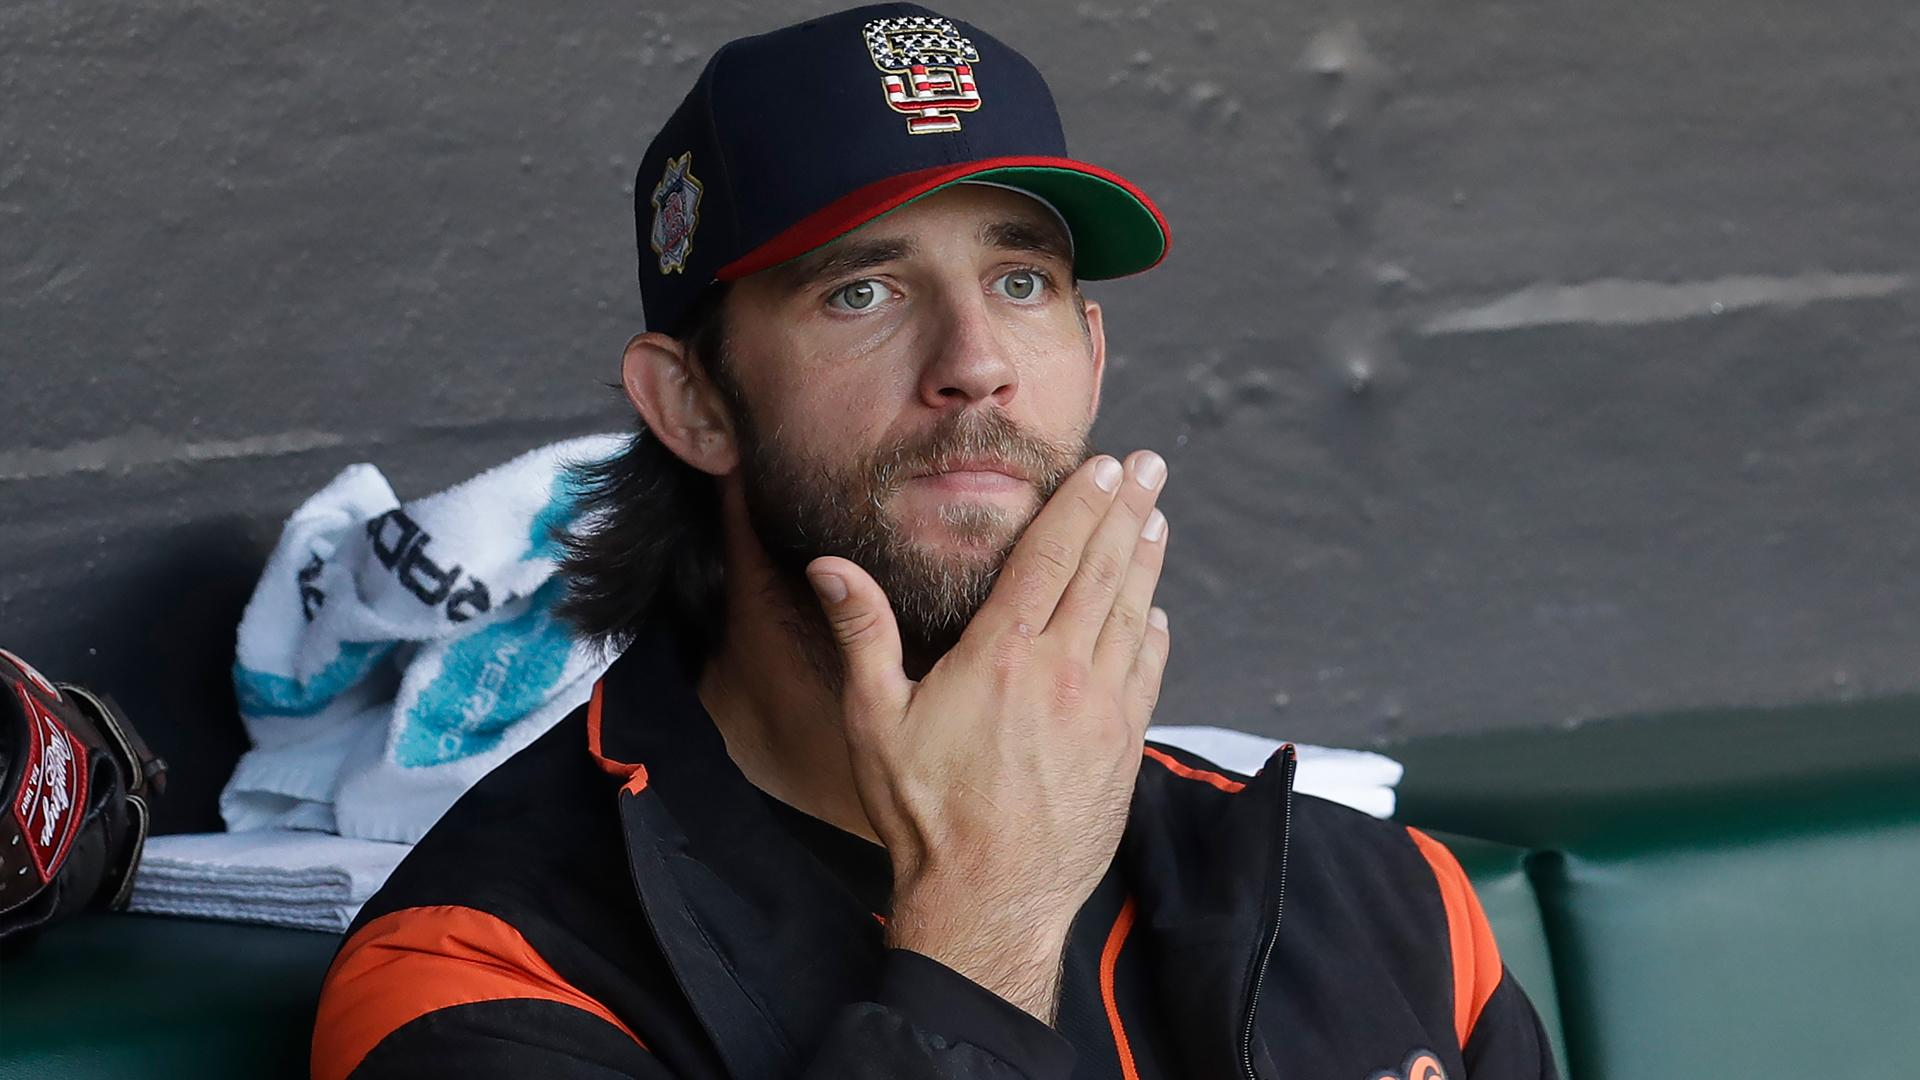 Yankees should acquire Madison Bumgarner from Giants, analyst writes